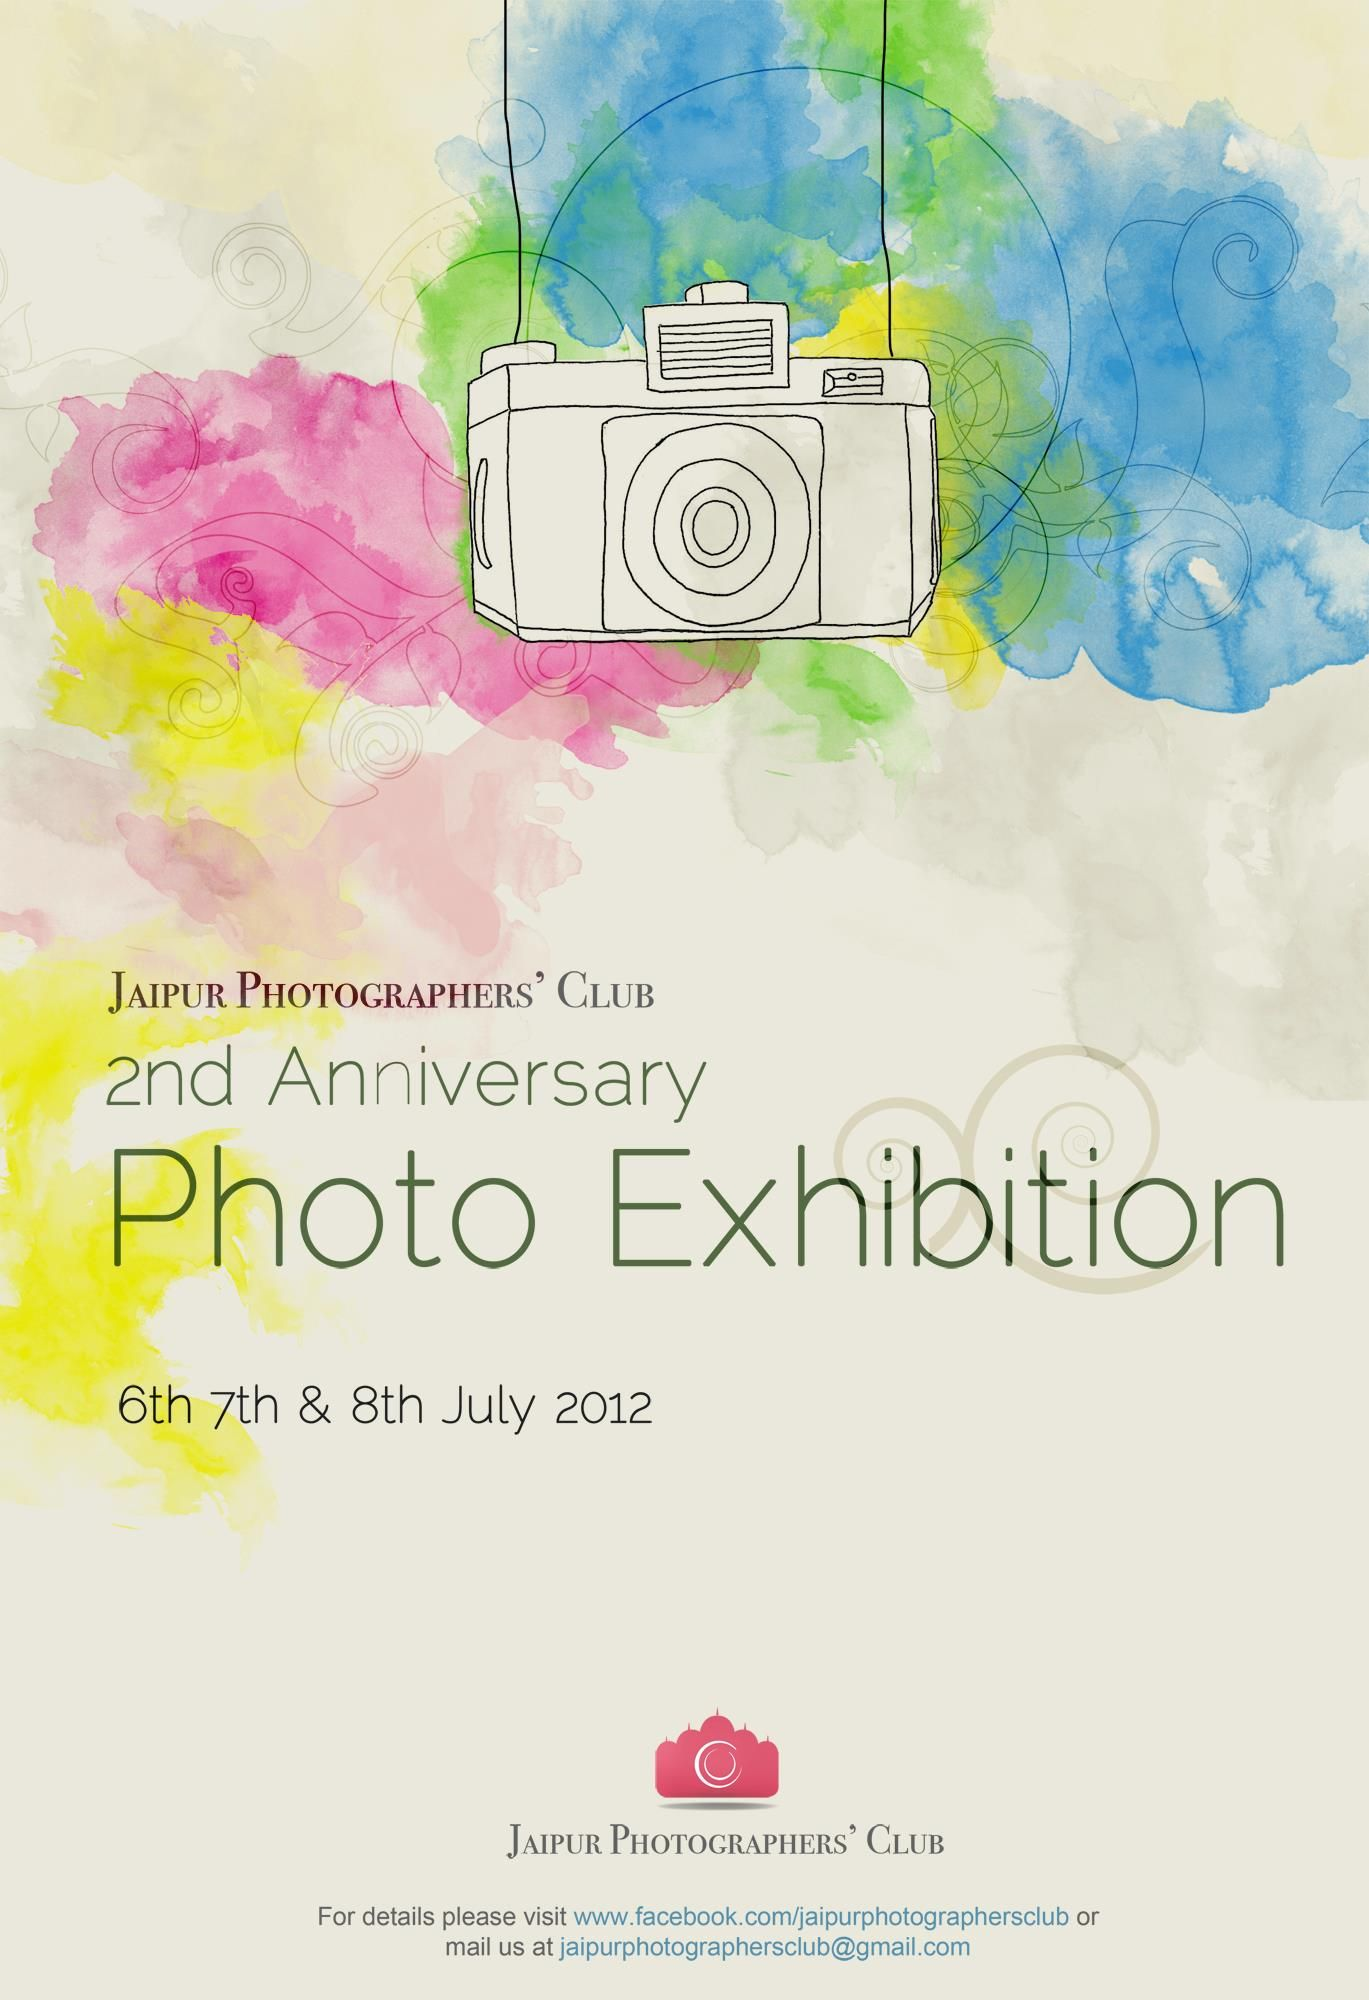 Poster design ideas pinterest - Photography Exhibition Poster Exhibition Posterexhibition Ideasdesign